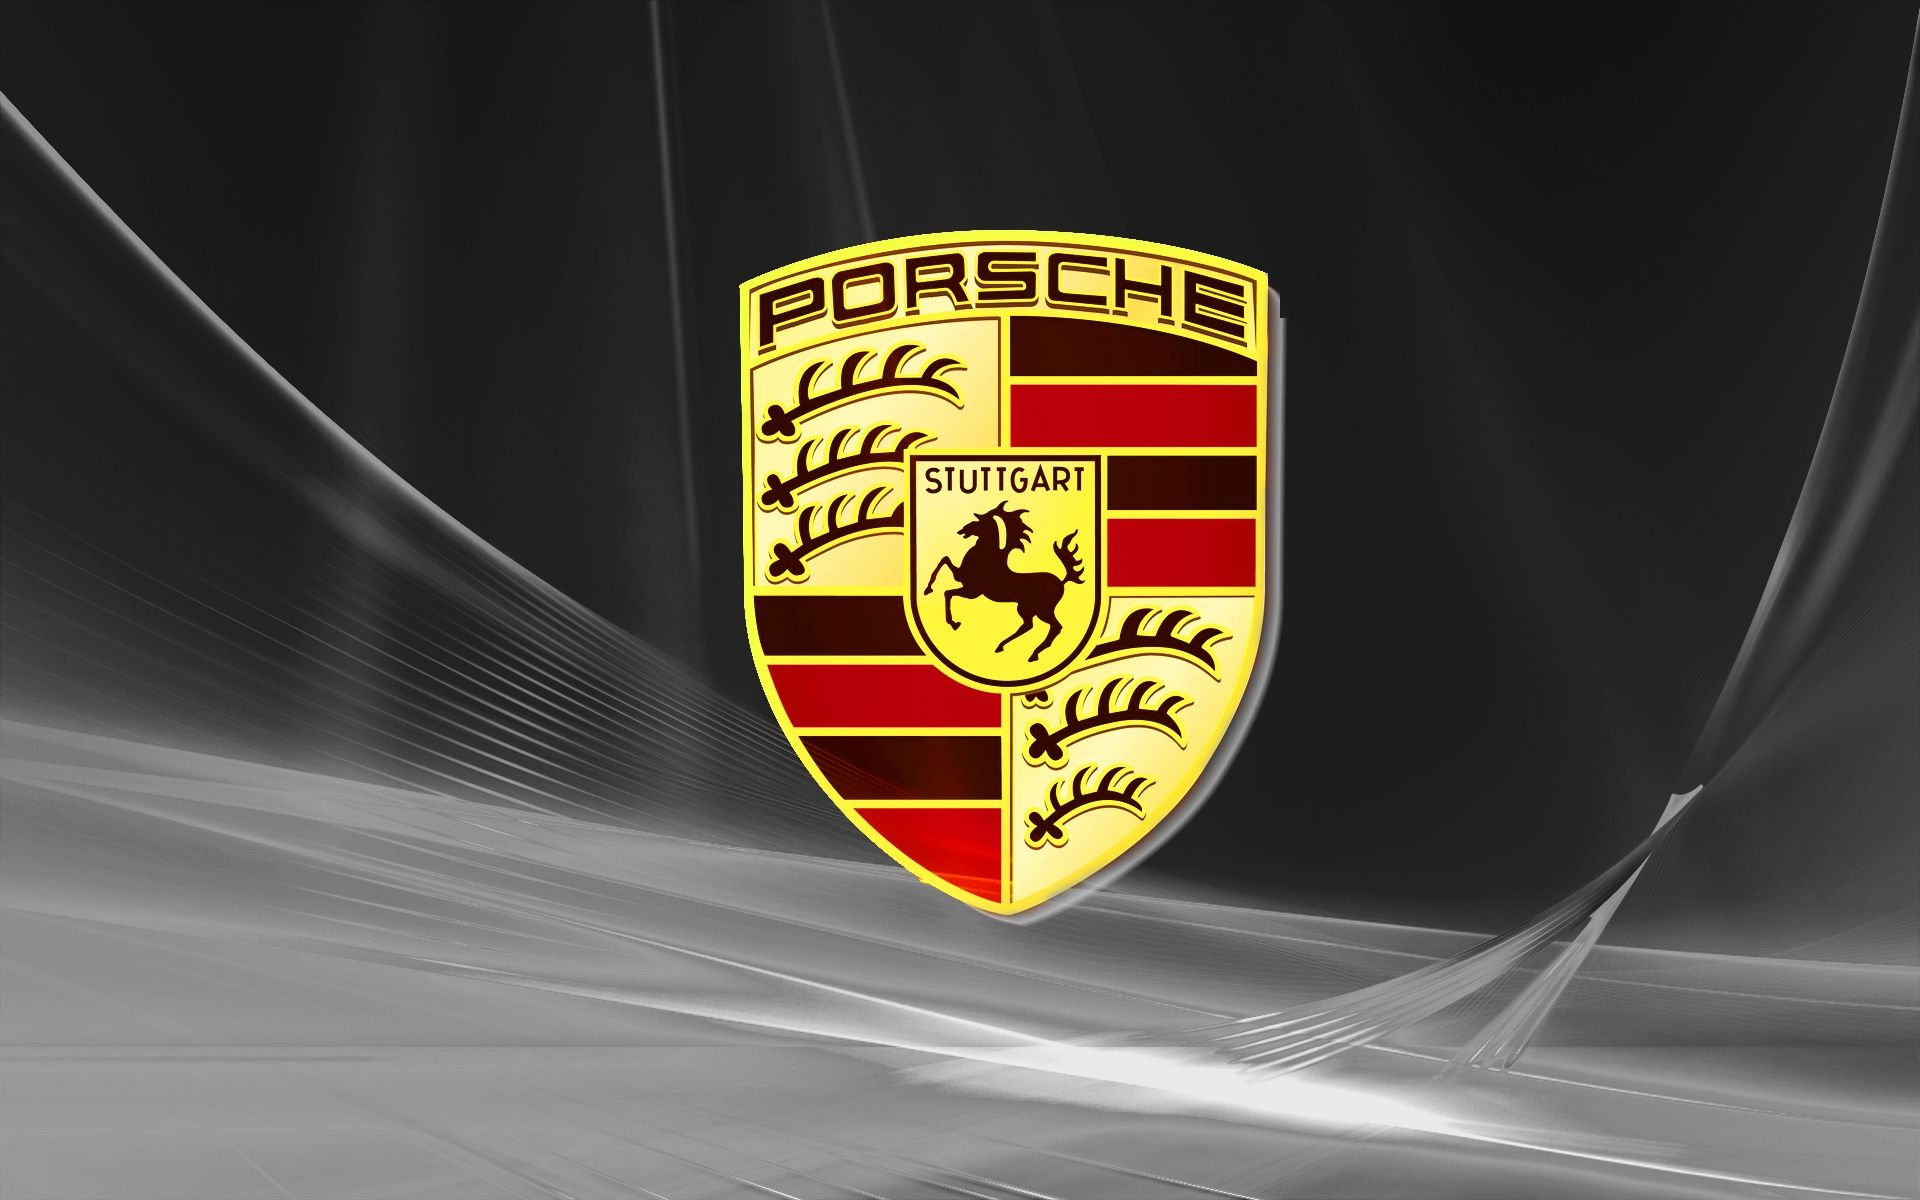 Porsche Logo Wallpaper For Iphone Click Wallpapers Porsche Logo Car Logos Logos